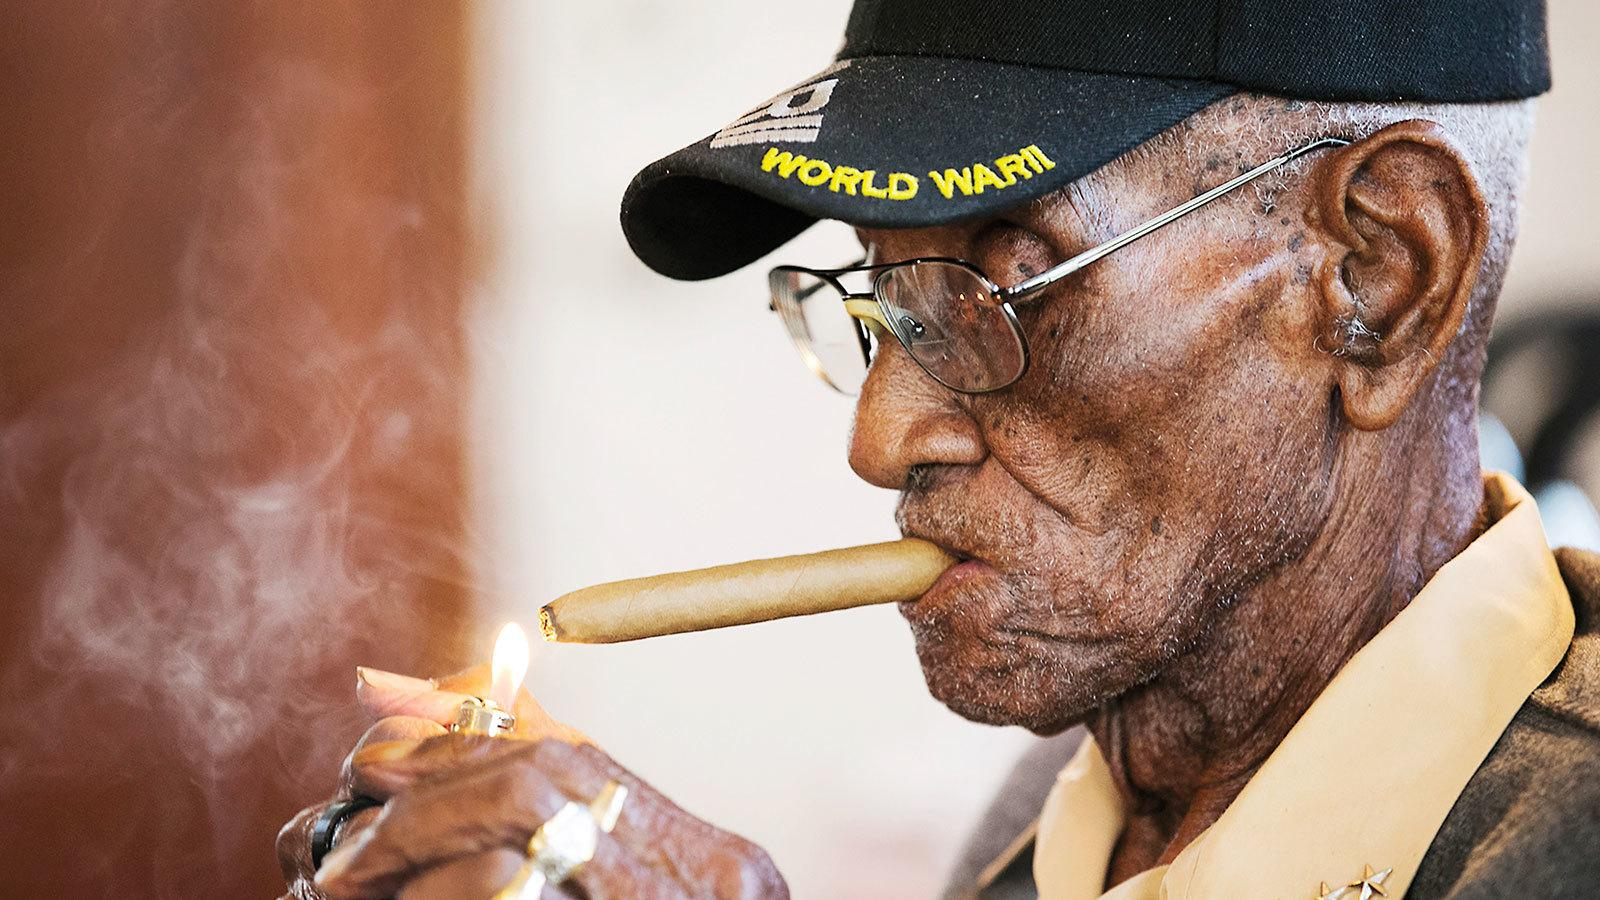 Cigar Lover Richard Overton, America's Oldest Man, Dies At 112